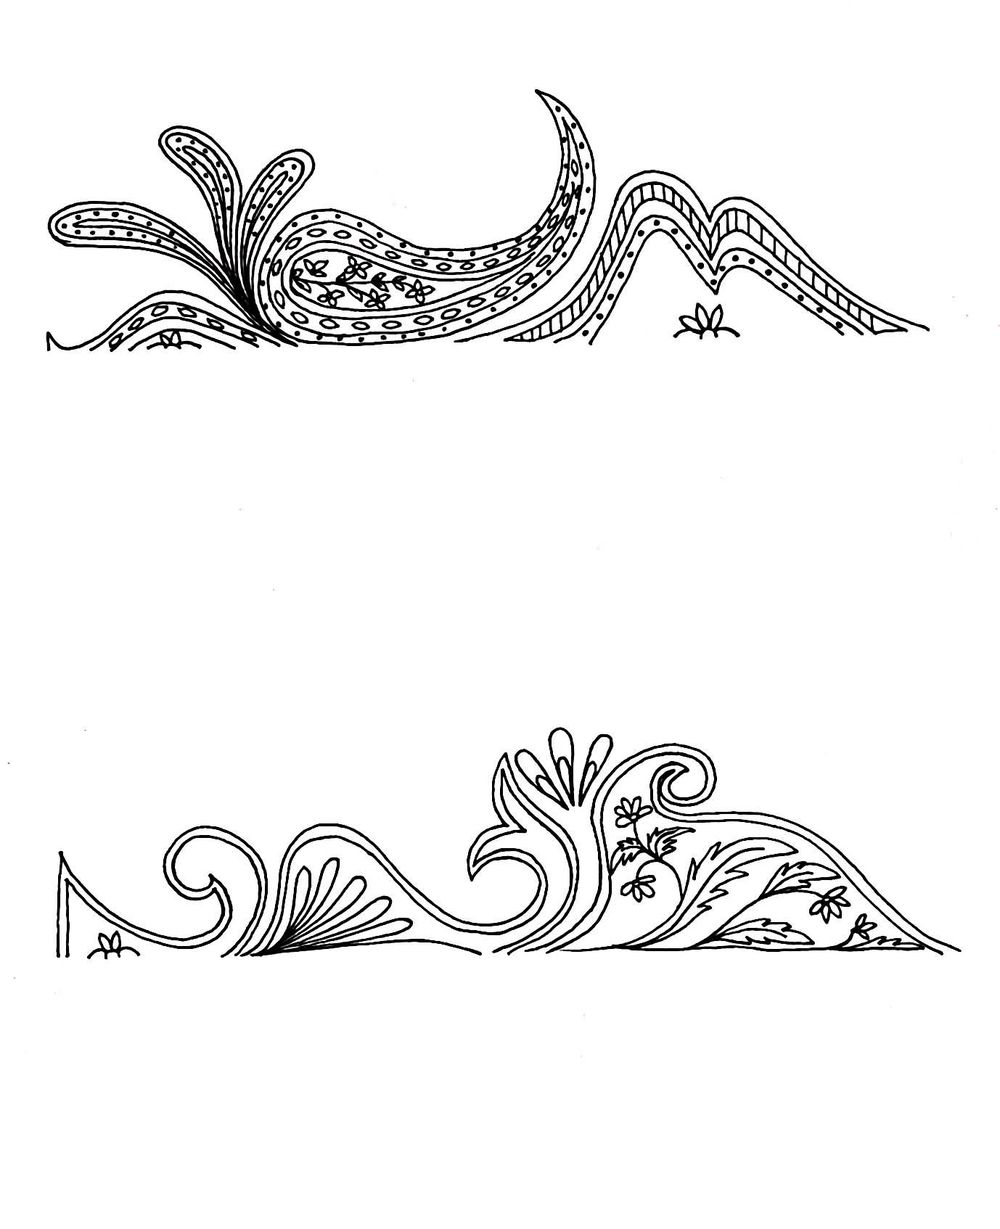 Paisley prints - image 2 - student project